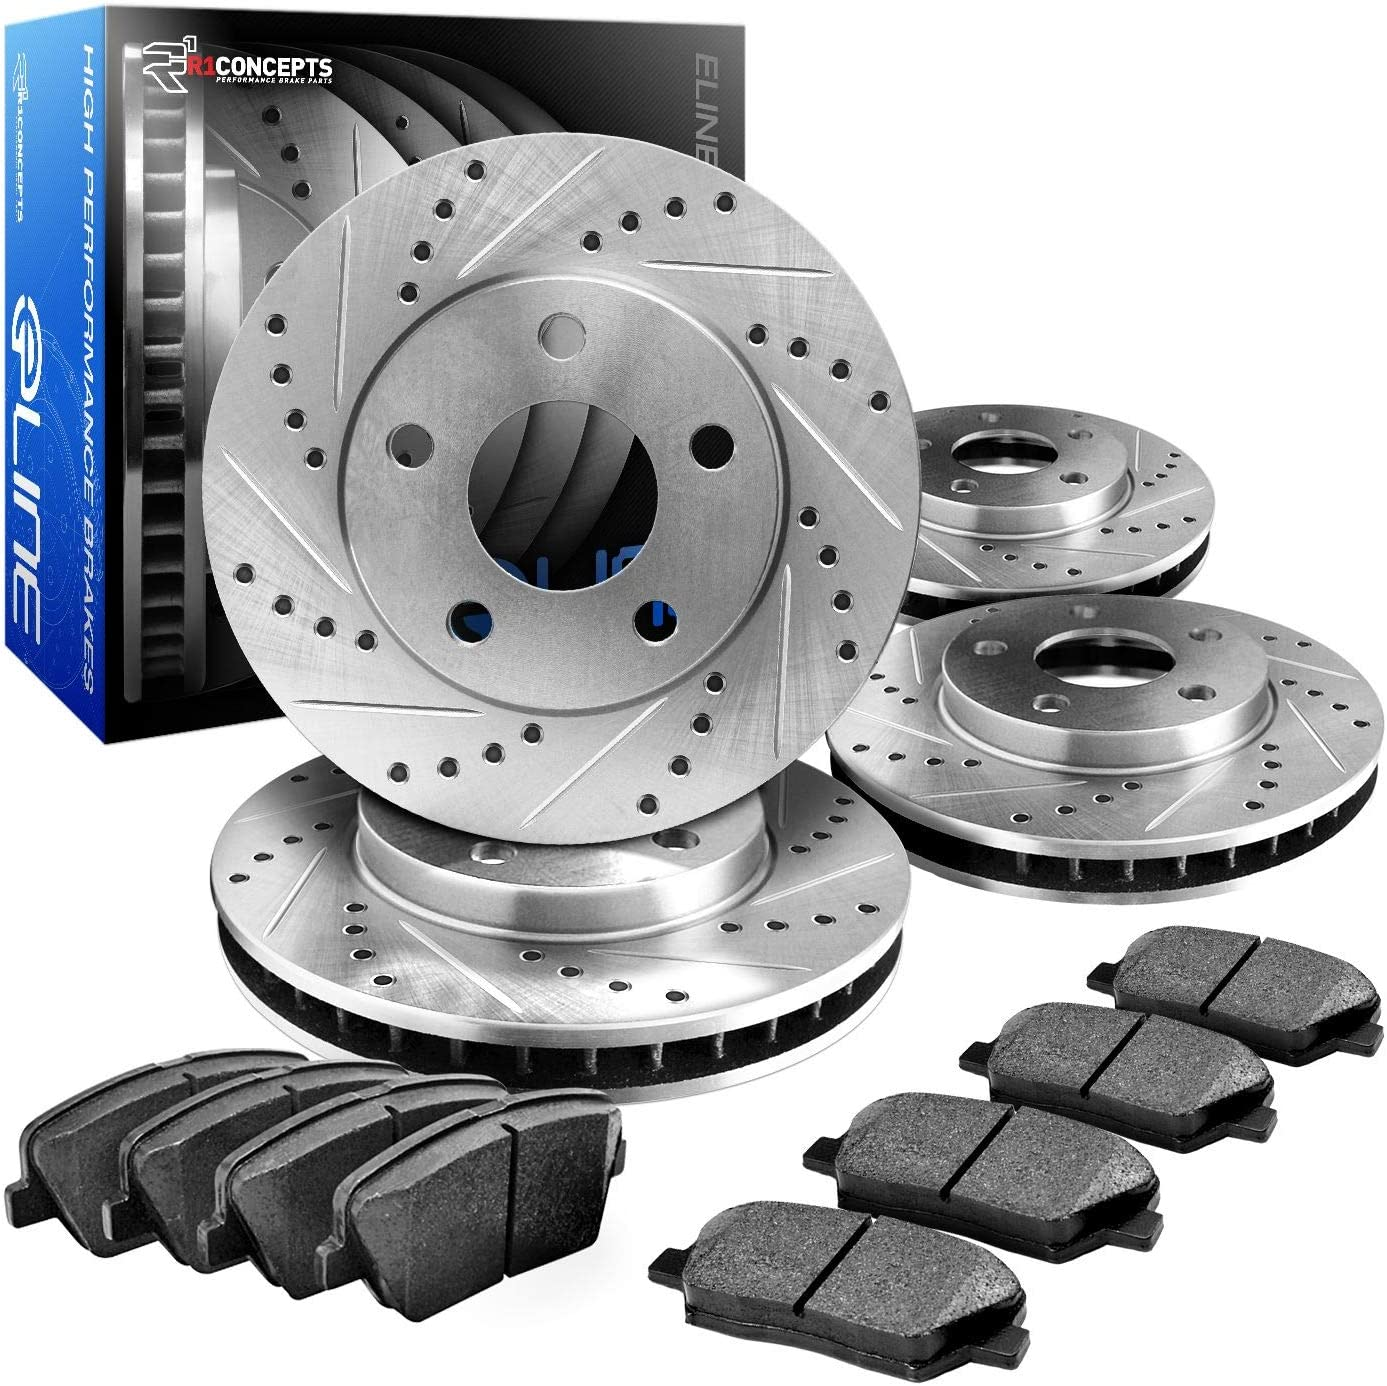 R1 Chicago Mall Our shop most popular Concepts CEDS10198 Eline Slotted Series Rotors Cross-Drilled